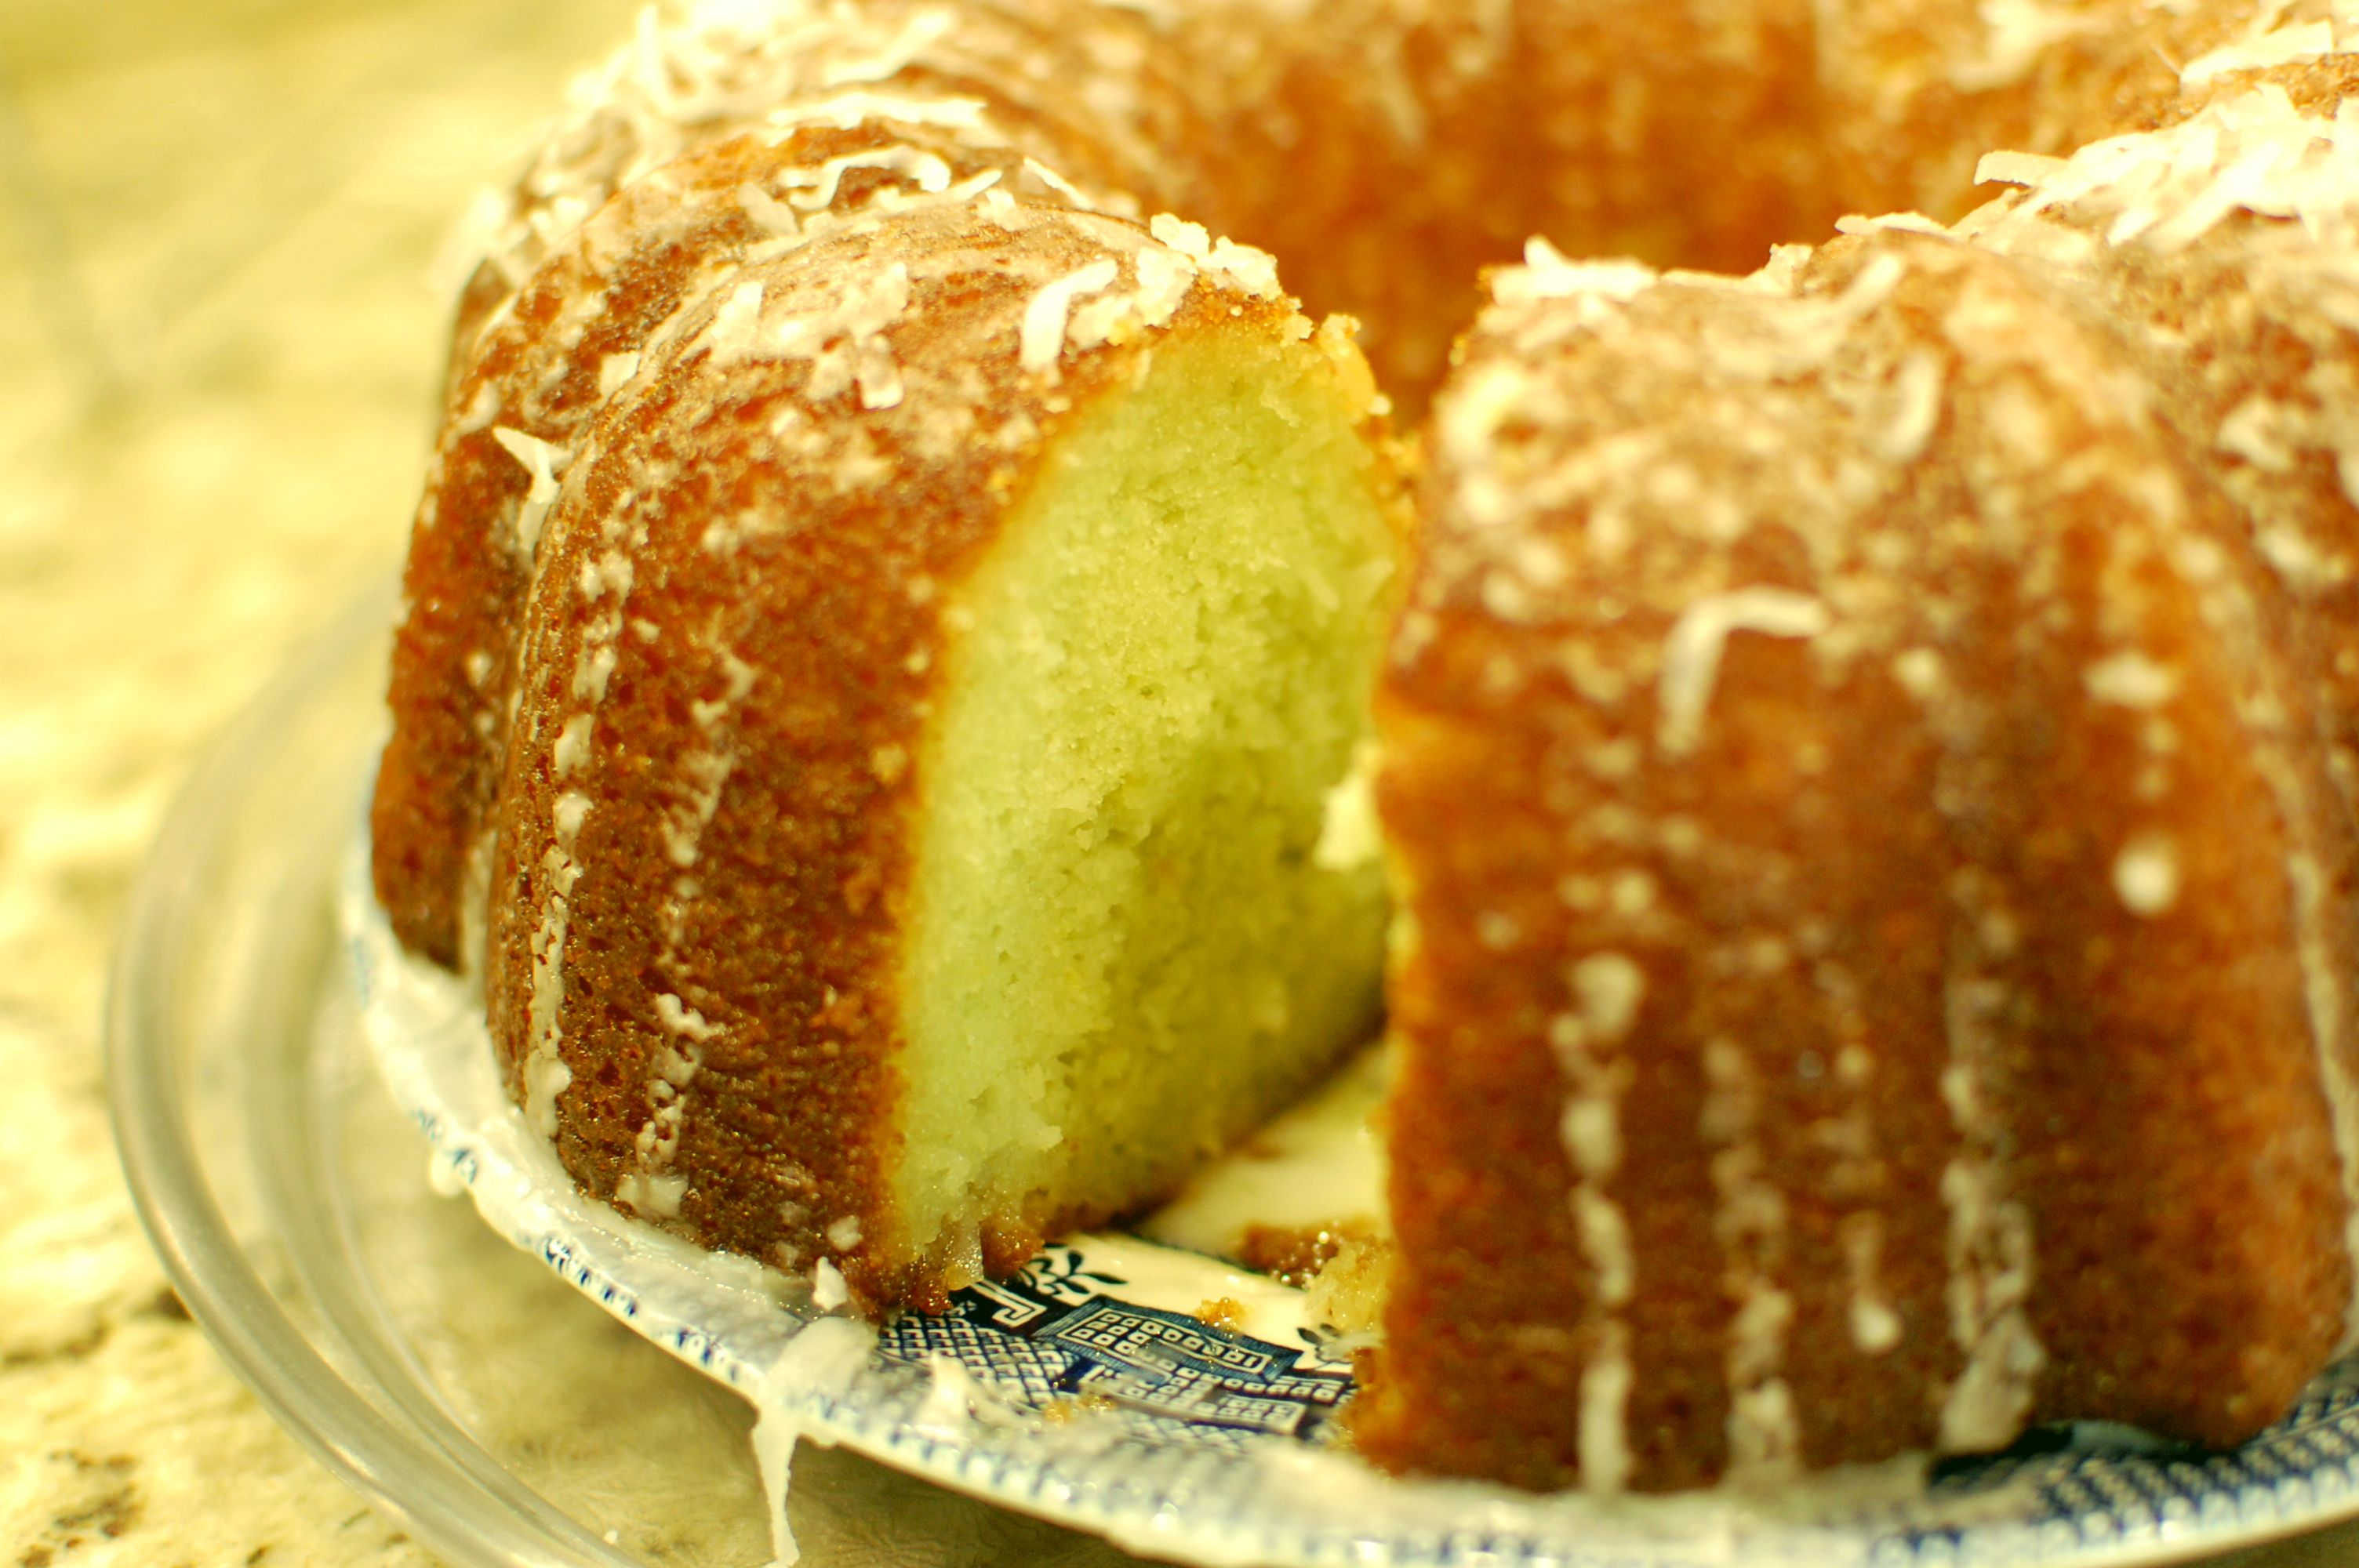 Coconut Lime Bundt Cake — The 350 Degree Oven